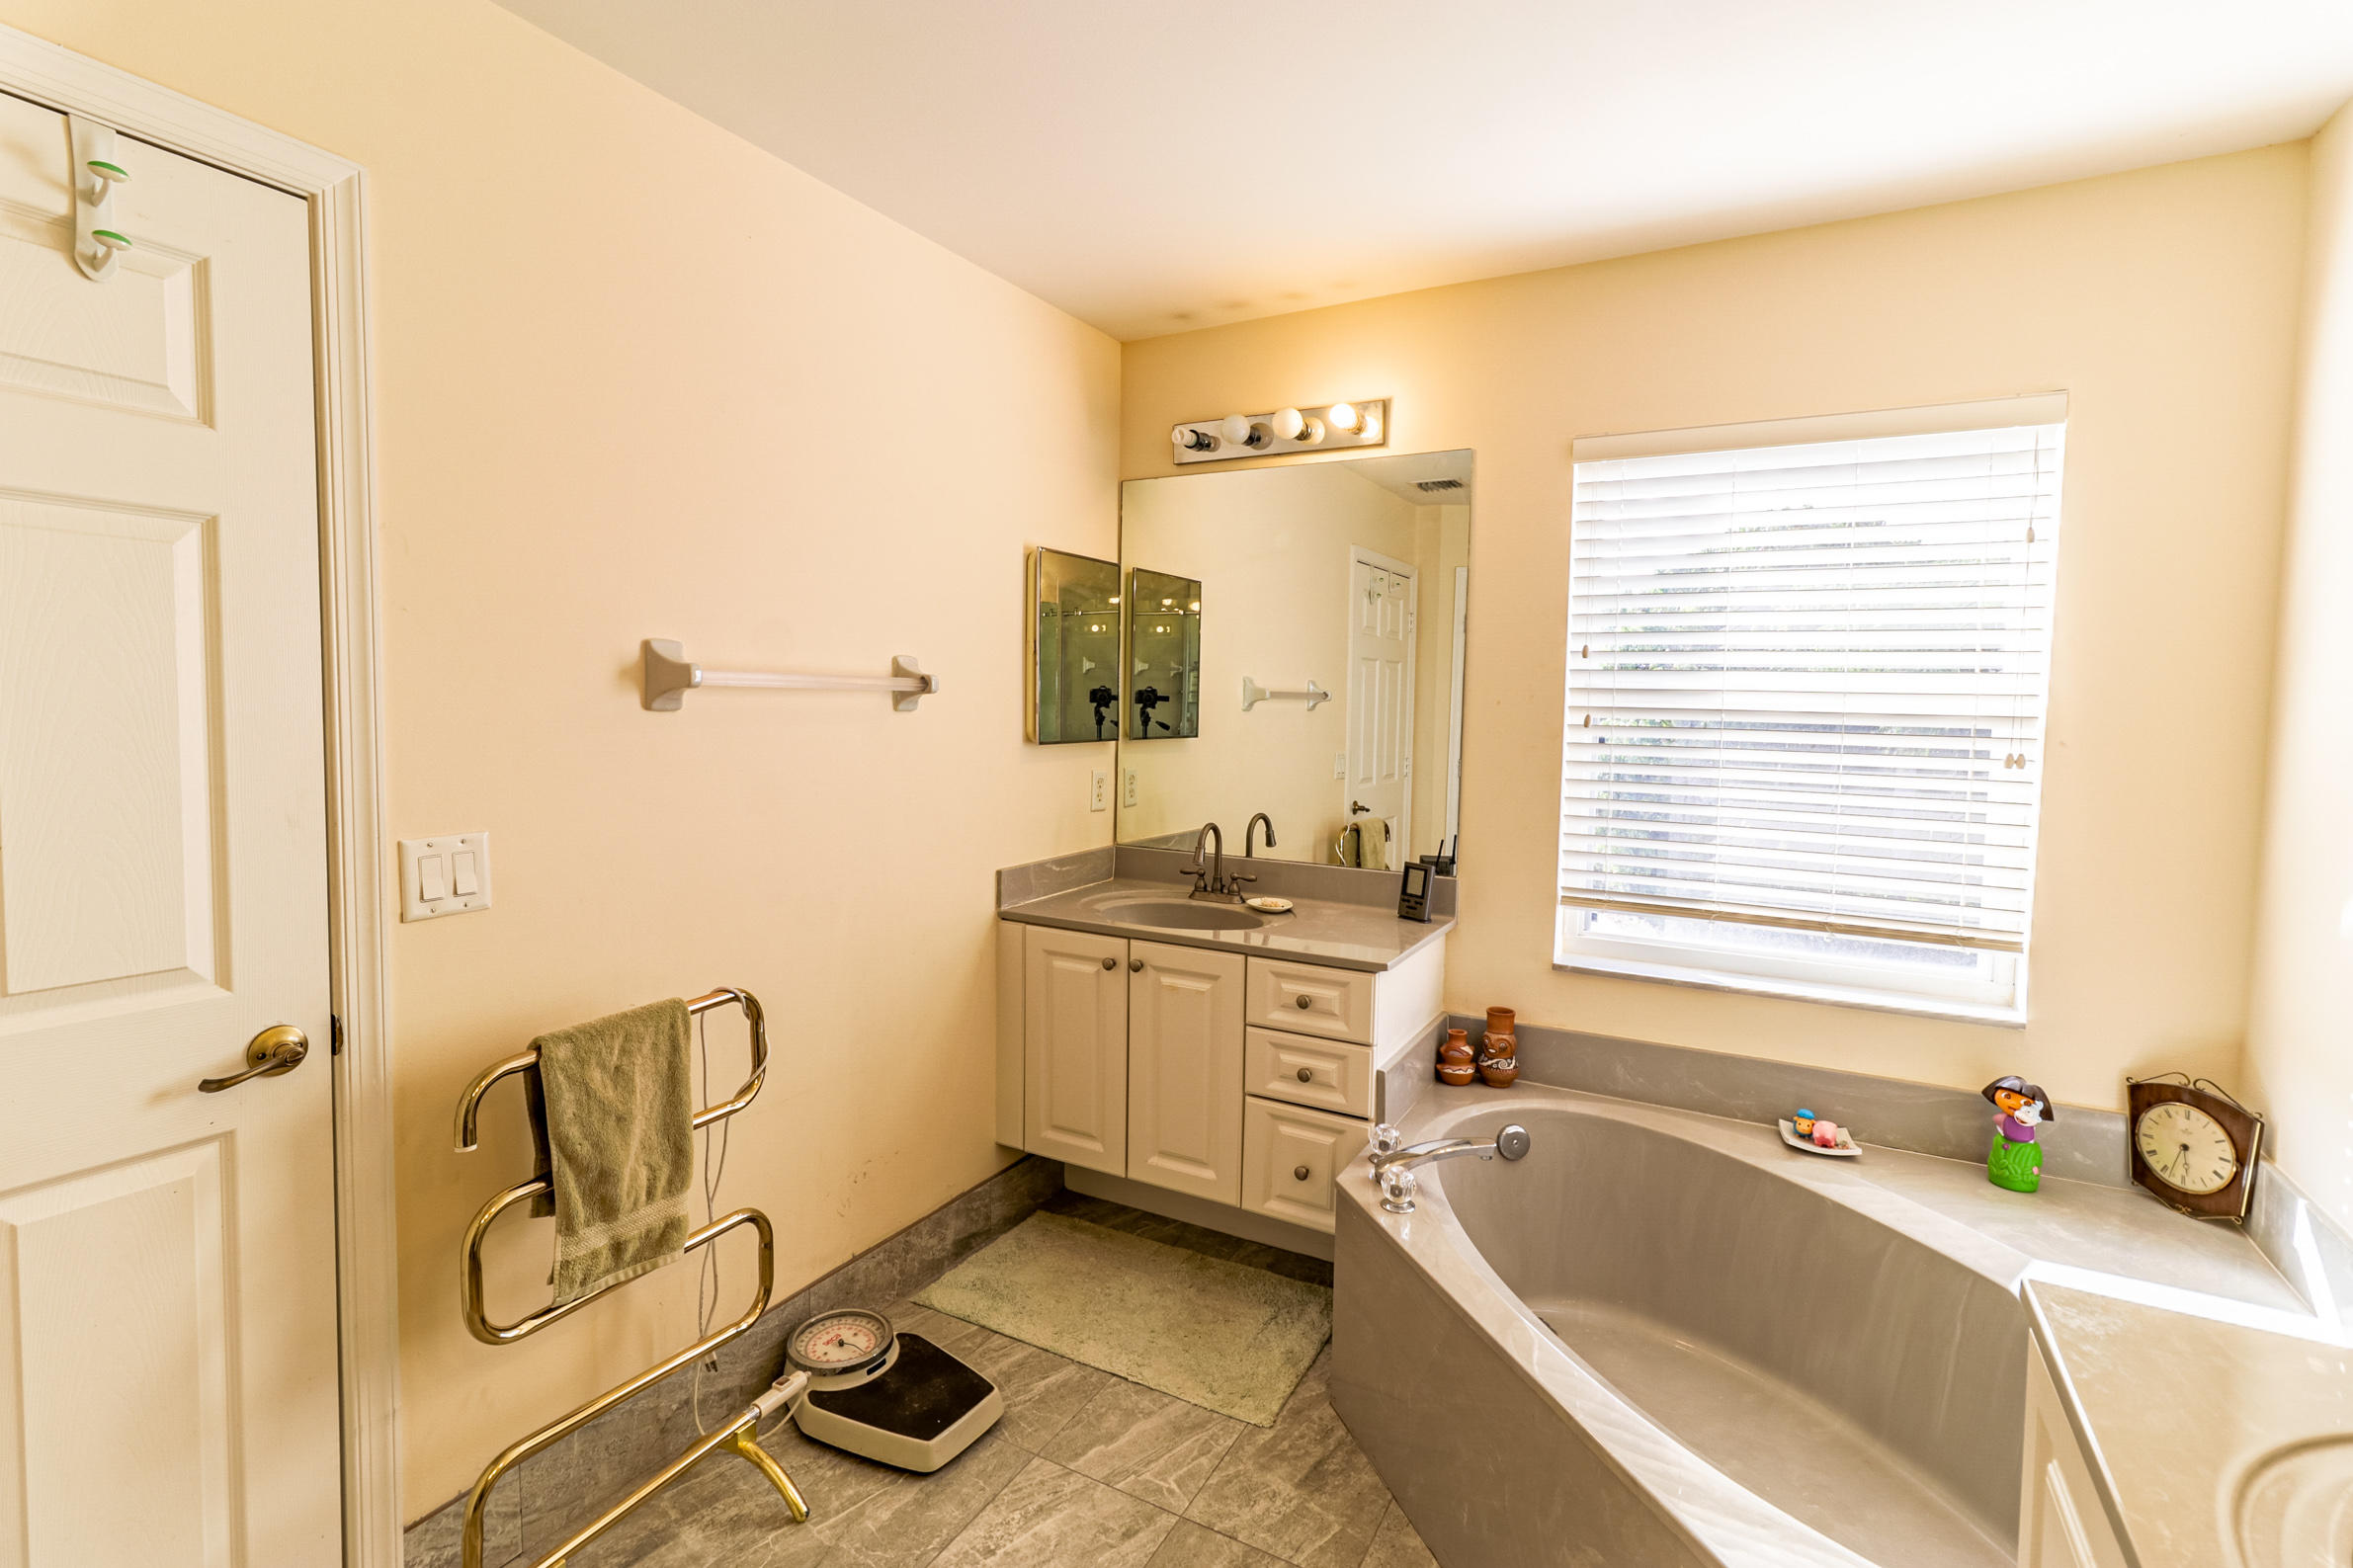 3048 El Camino Real West Palm Beach, FL 33409 small photo 13